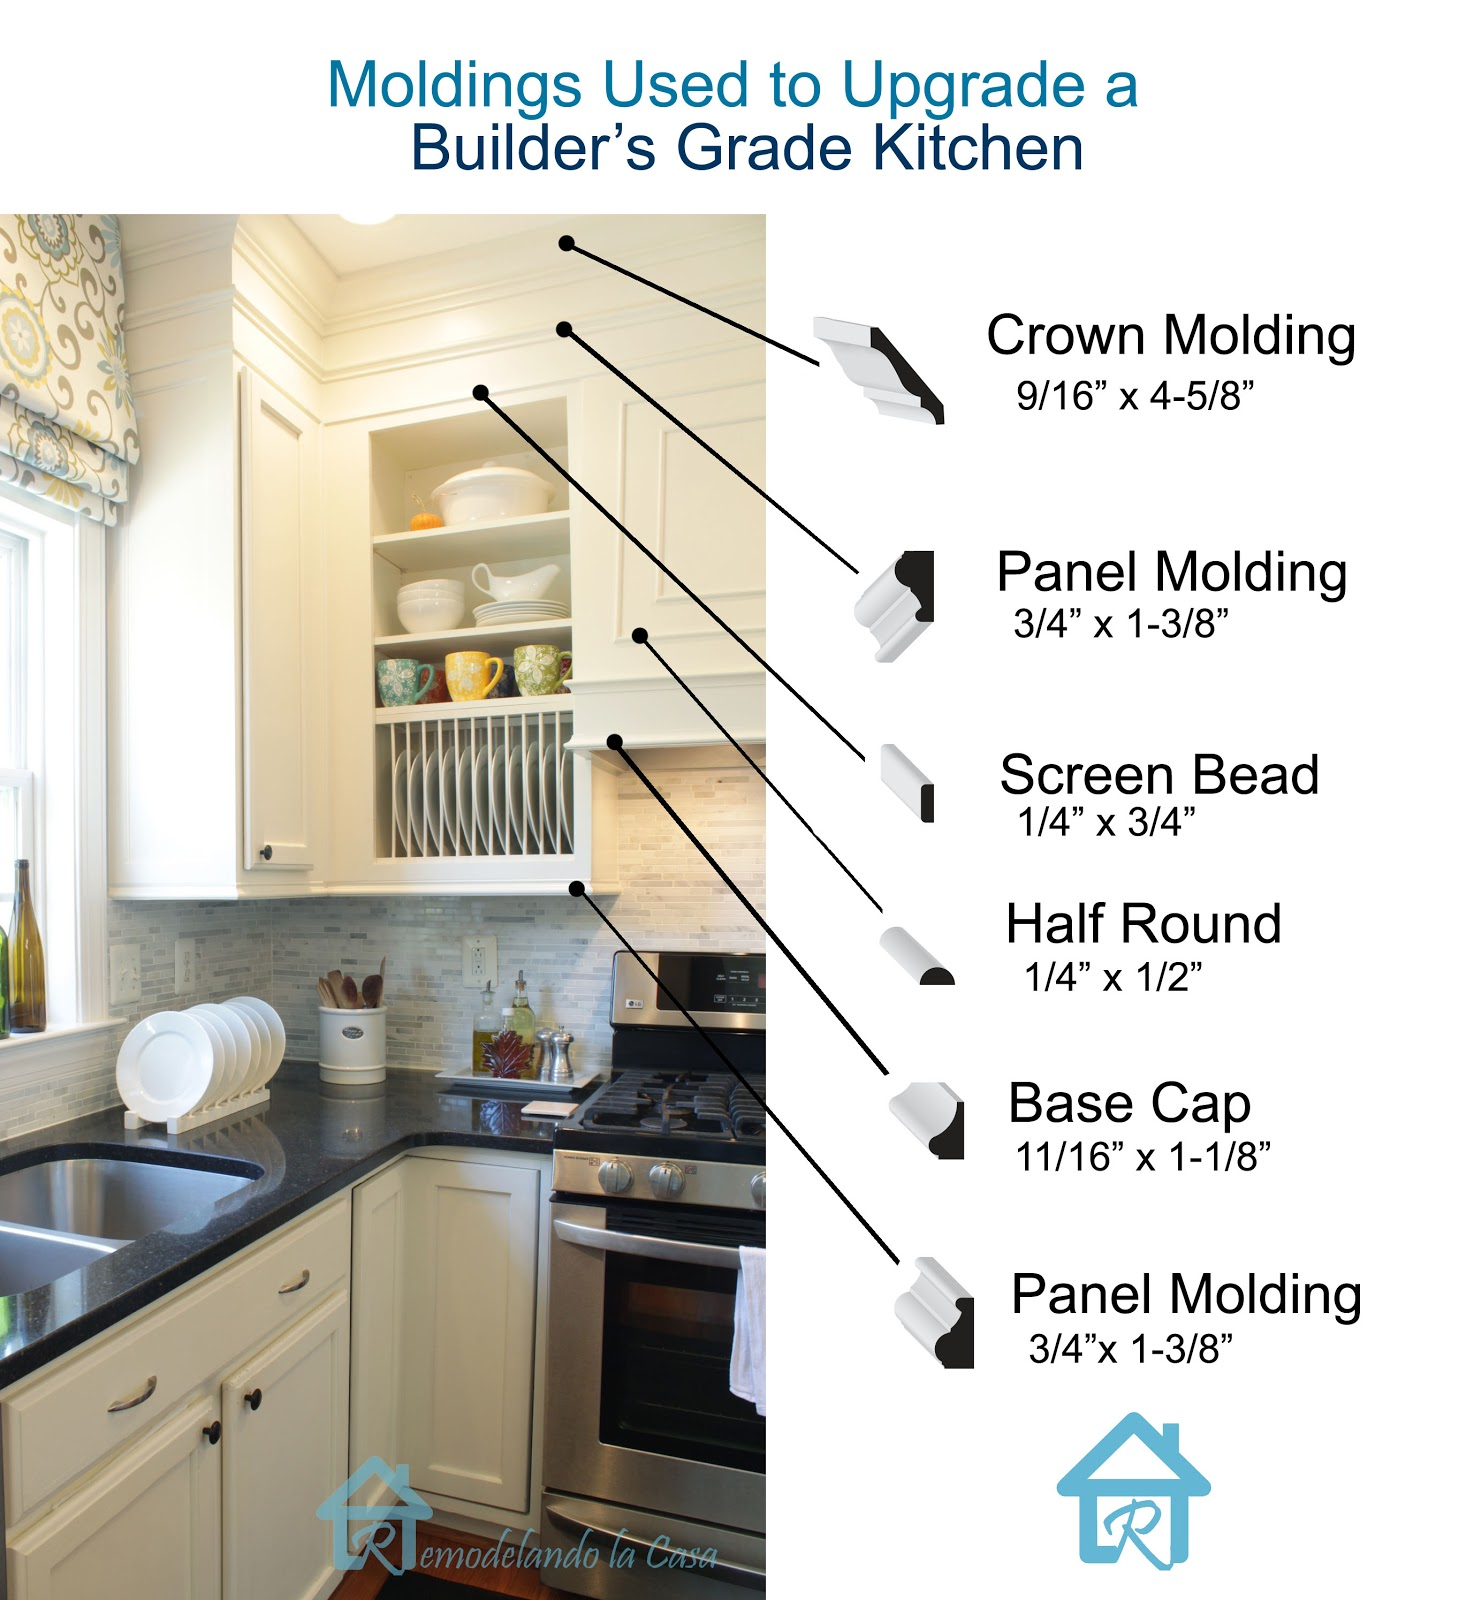 Installing Crown Molding On Kitchen Cabinets: Adding Crown Molding To The Top Of Bookcases